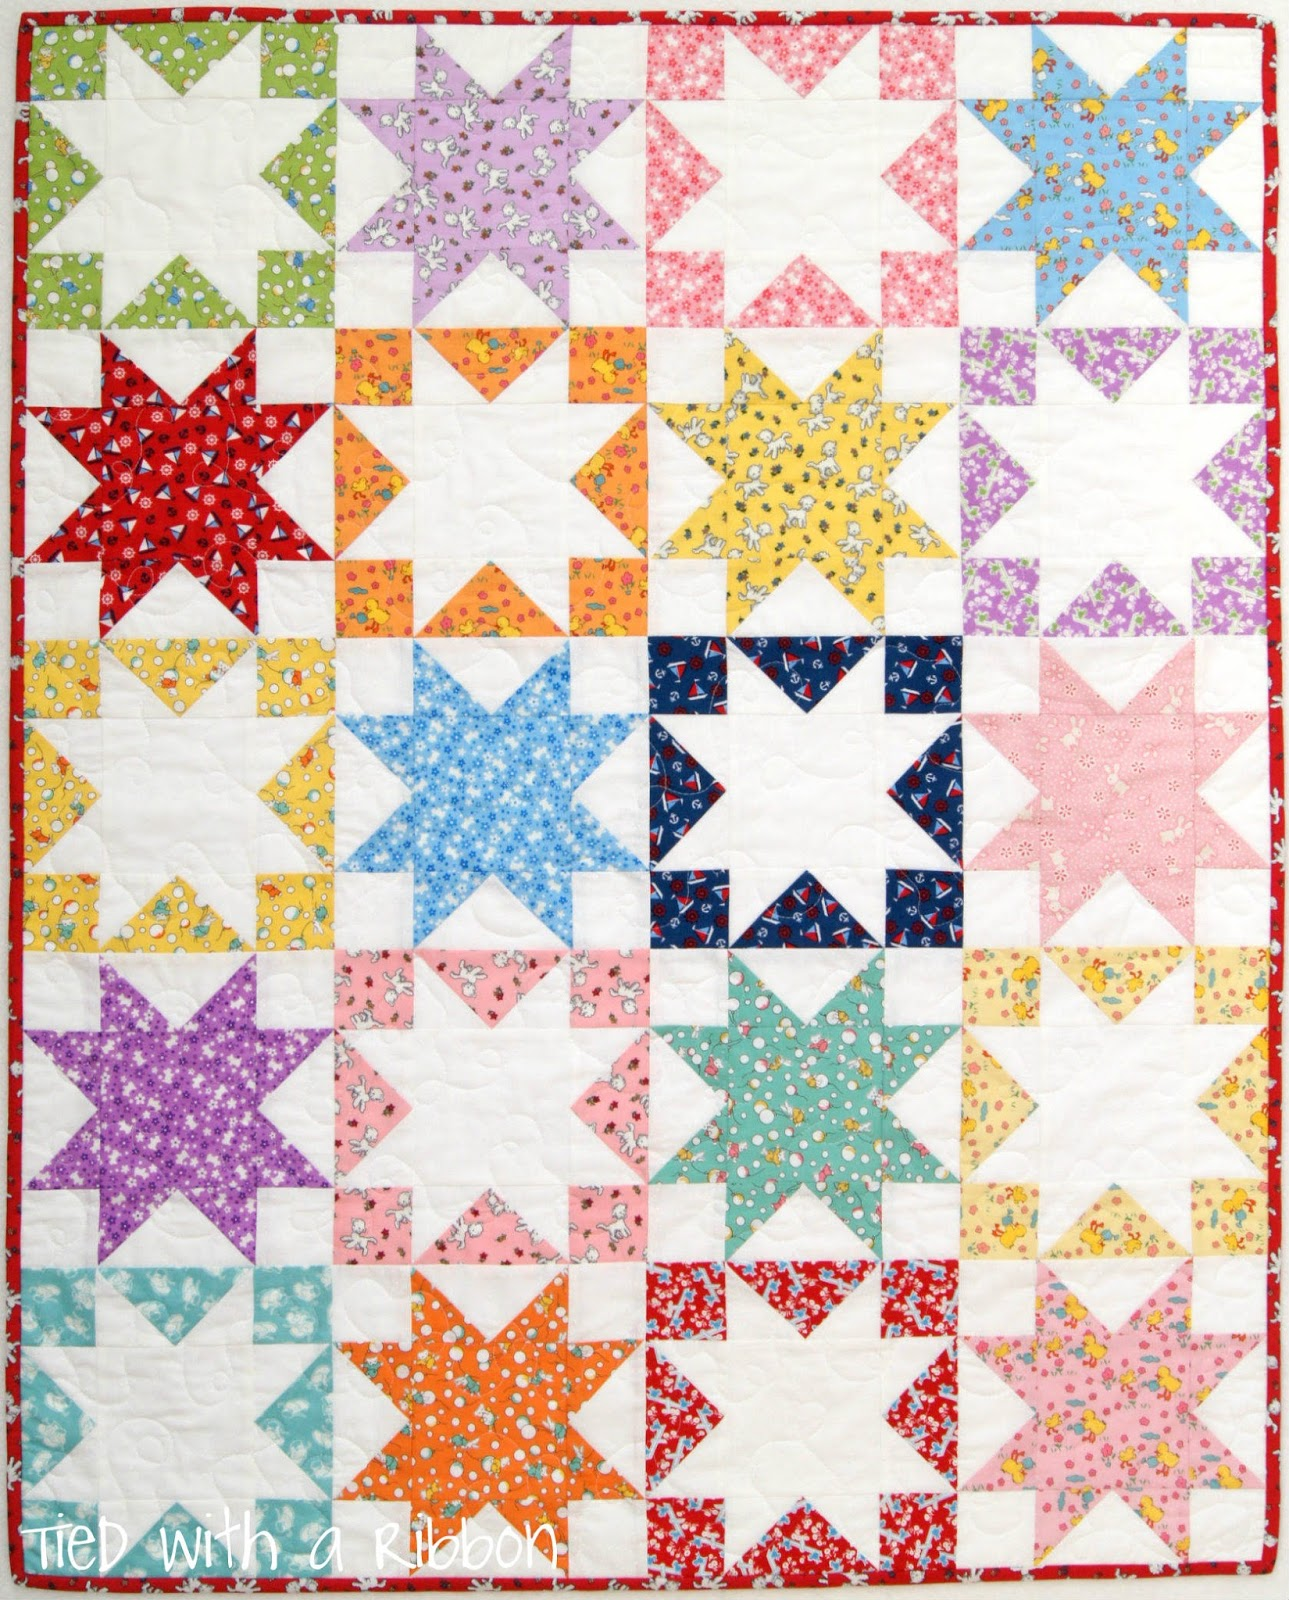 Tied With A Ribbon Shadow Stars Quilt Play Mat Tutorial